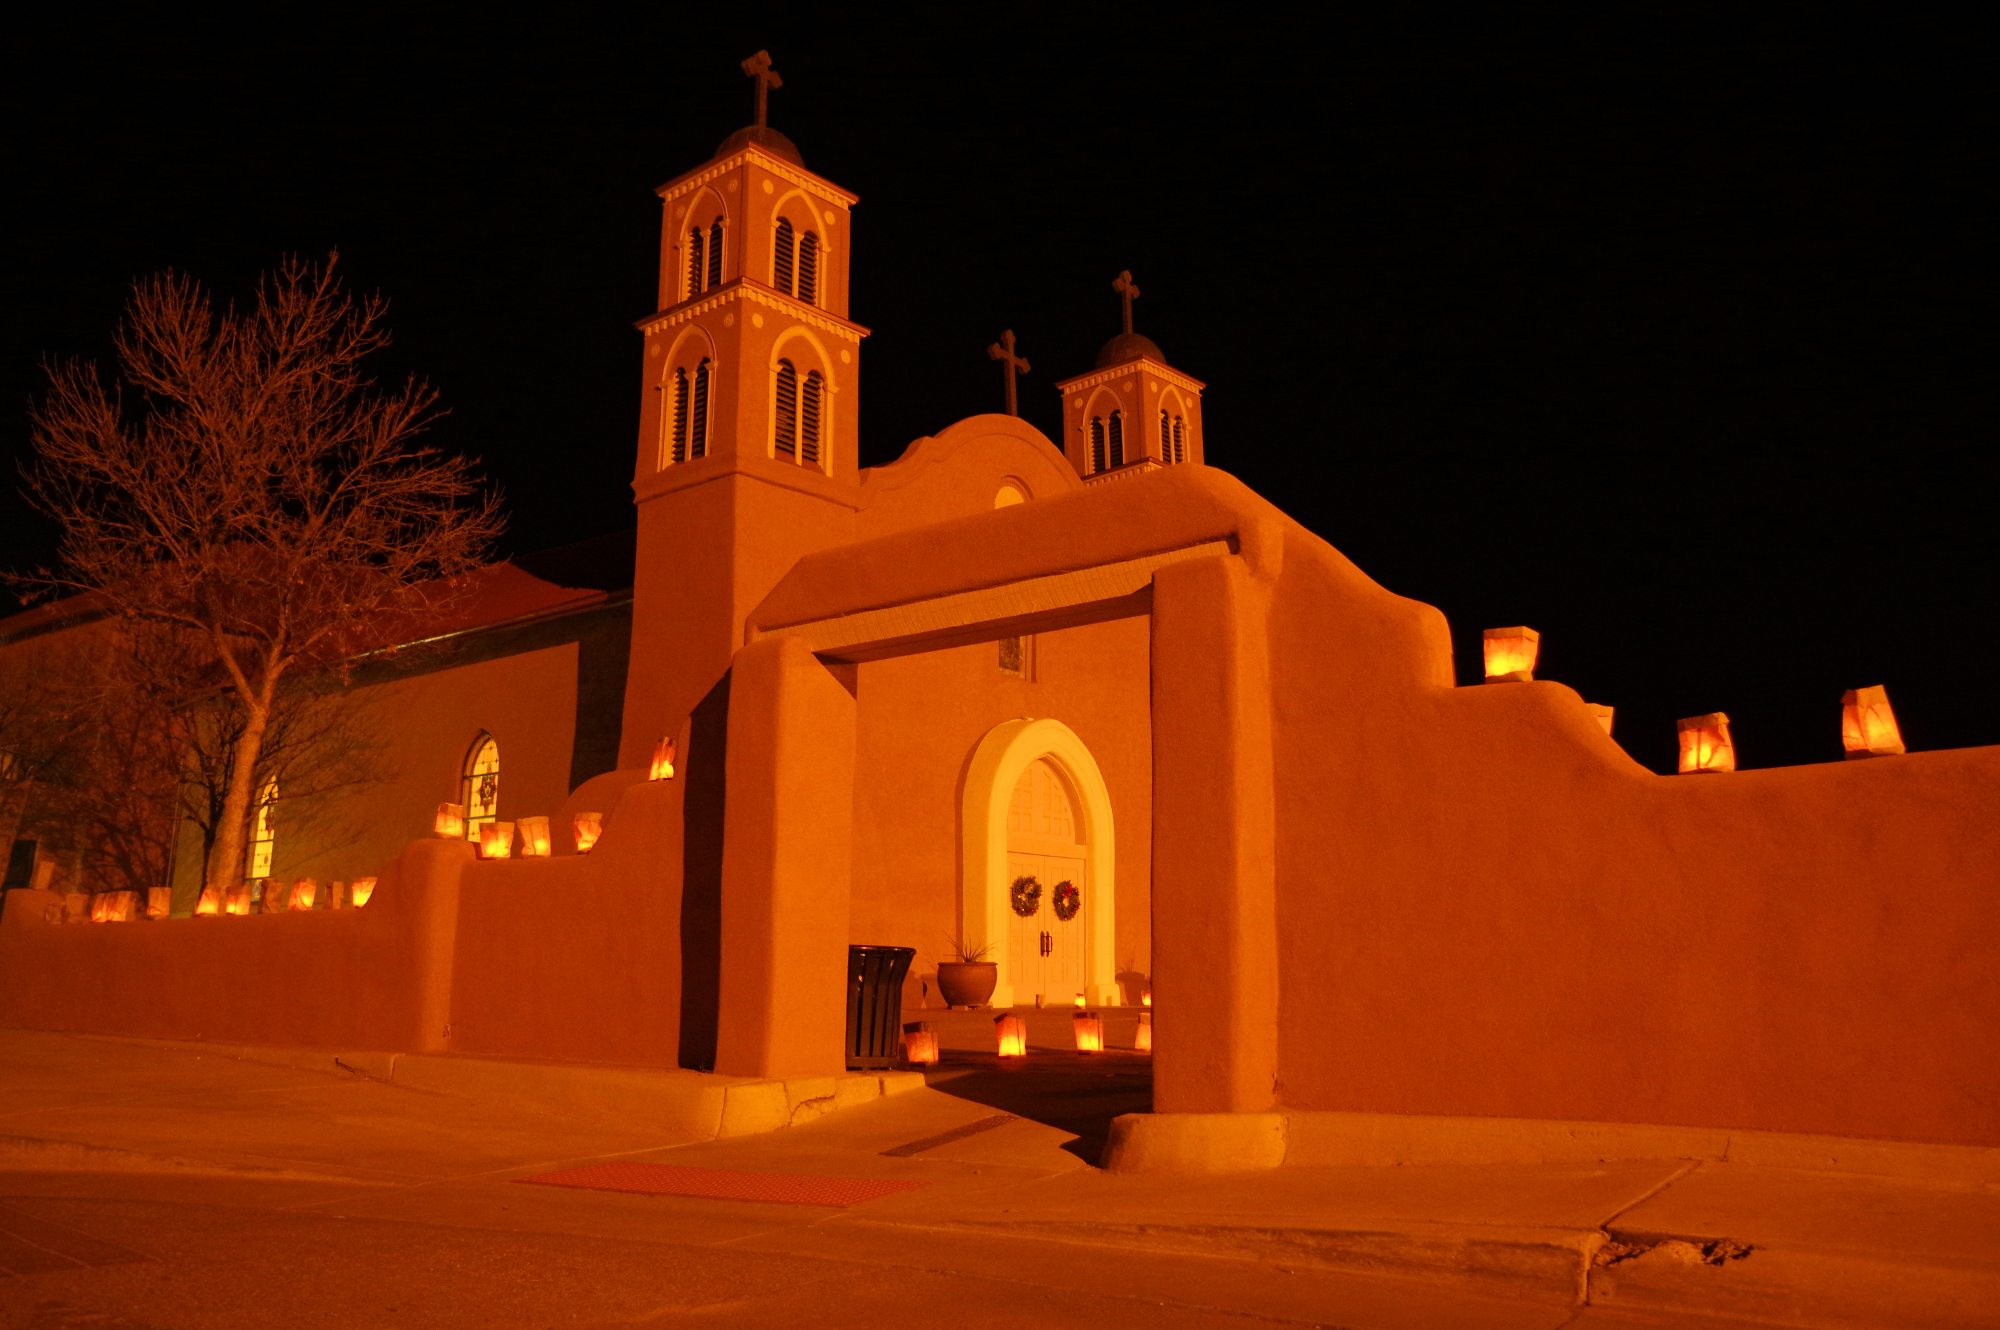 Historic San Miguel Mission in Socorro, NM. Mad Hildebrandt and her family are parishioners of this Mission Church